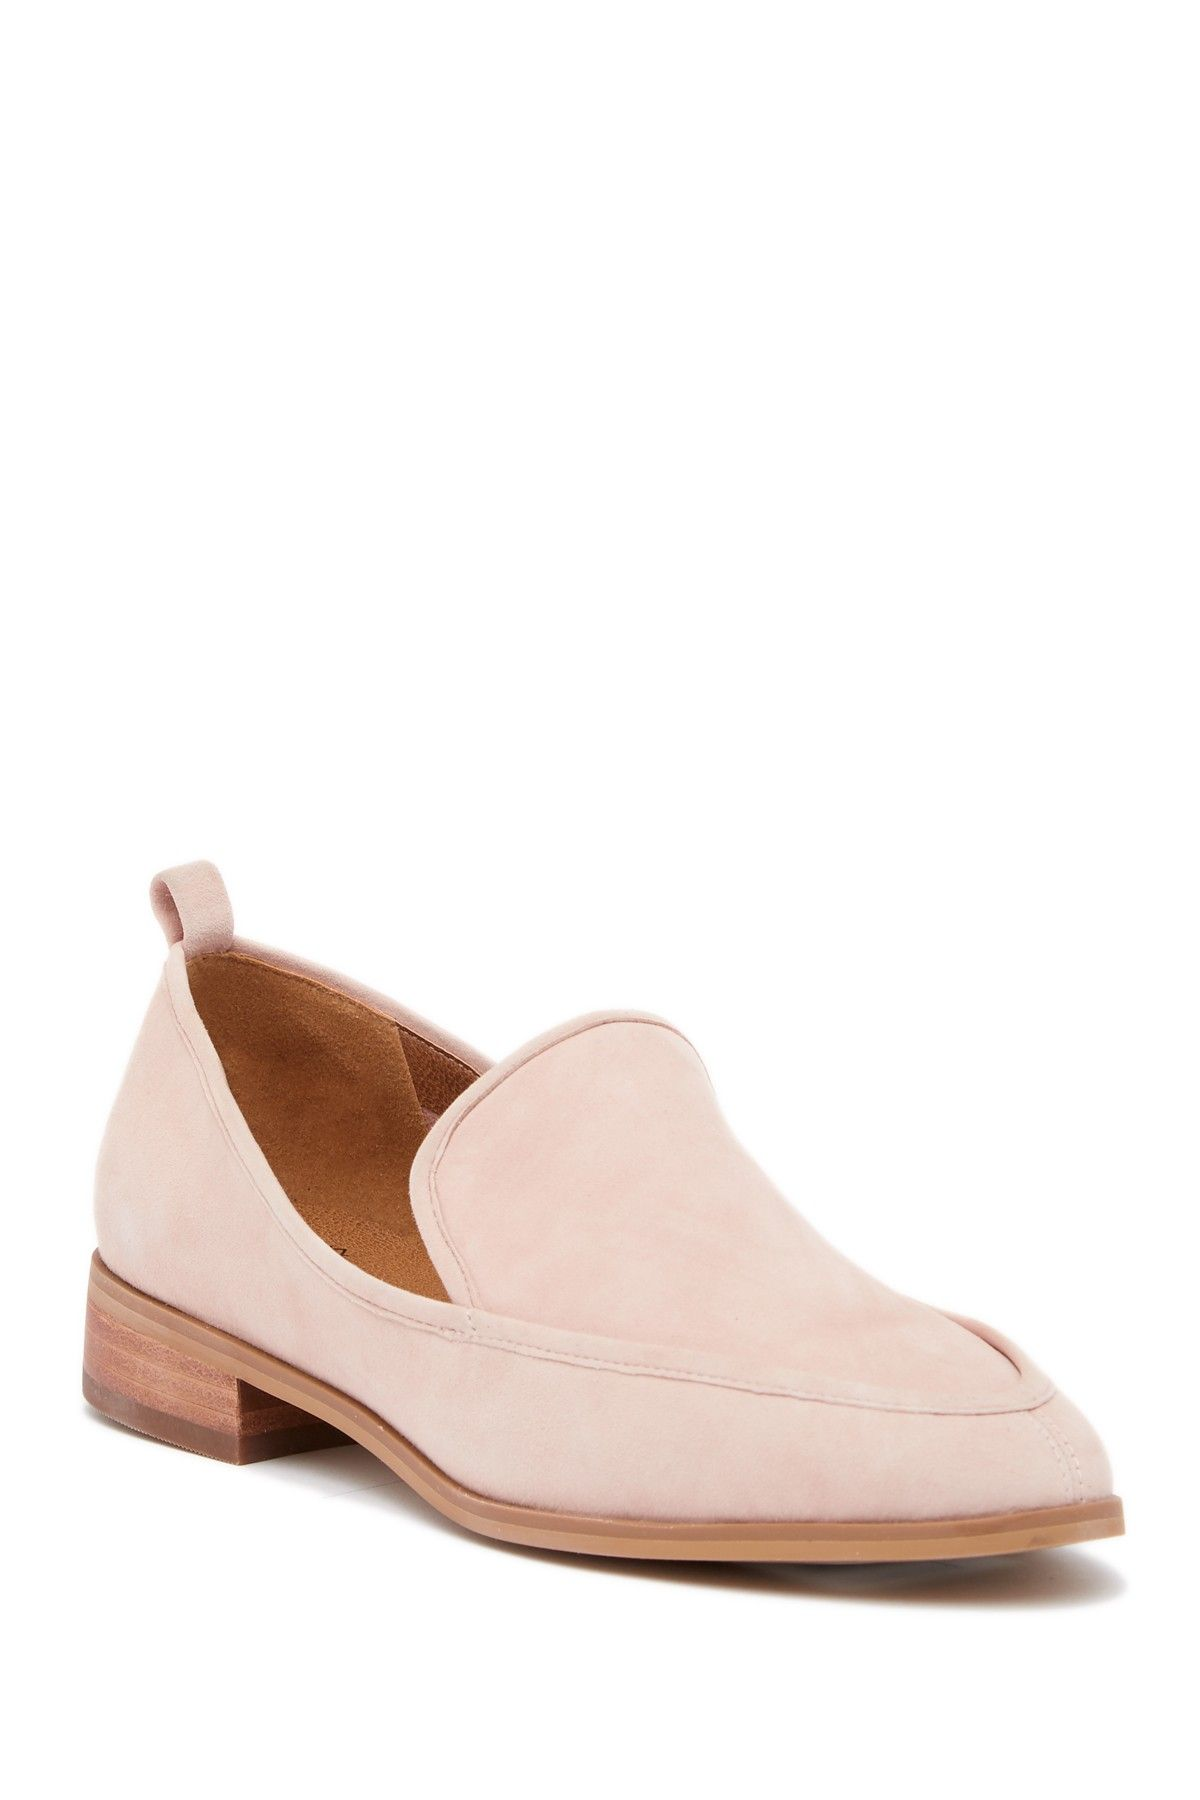 f3e8c4c8c28 Kellen Almond Toe Loafer - Wide Width Available by SUSINA on  nordstrom rack